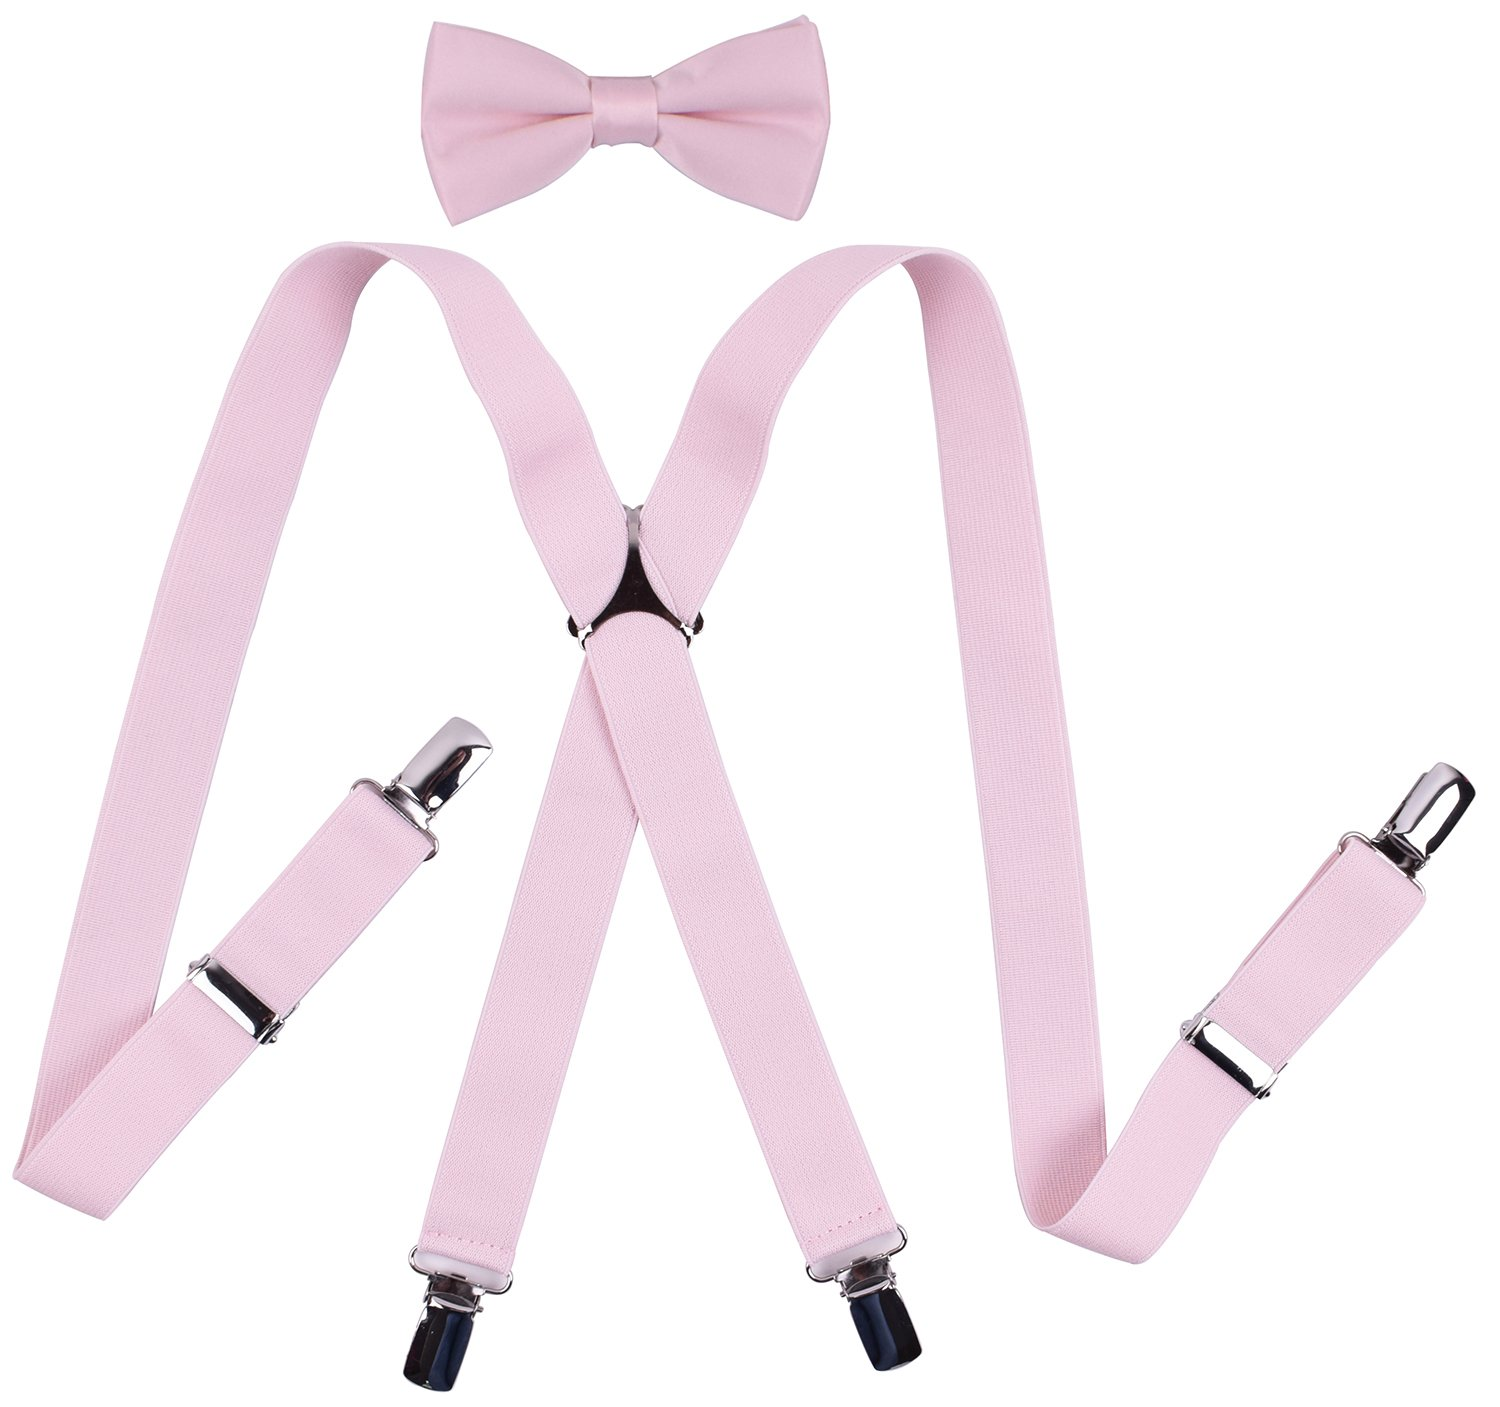 YJDS Boys' Suspenders and Bow Tie Sets Solid Clips Light Pink 30 Inches